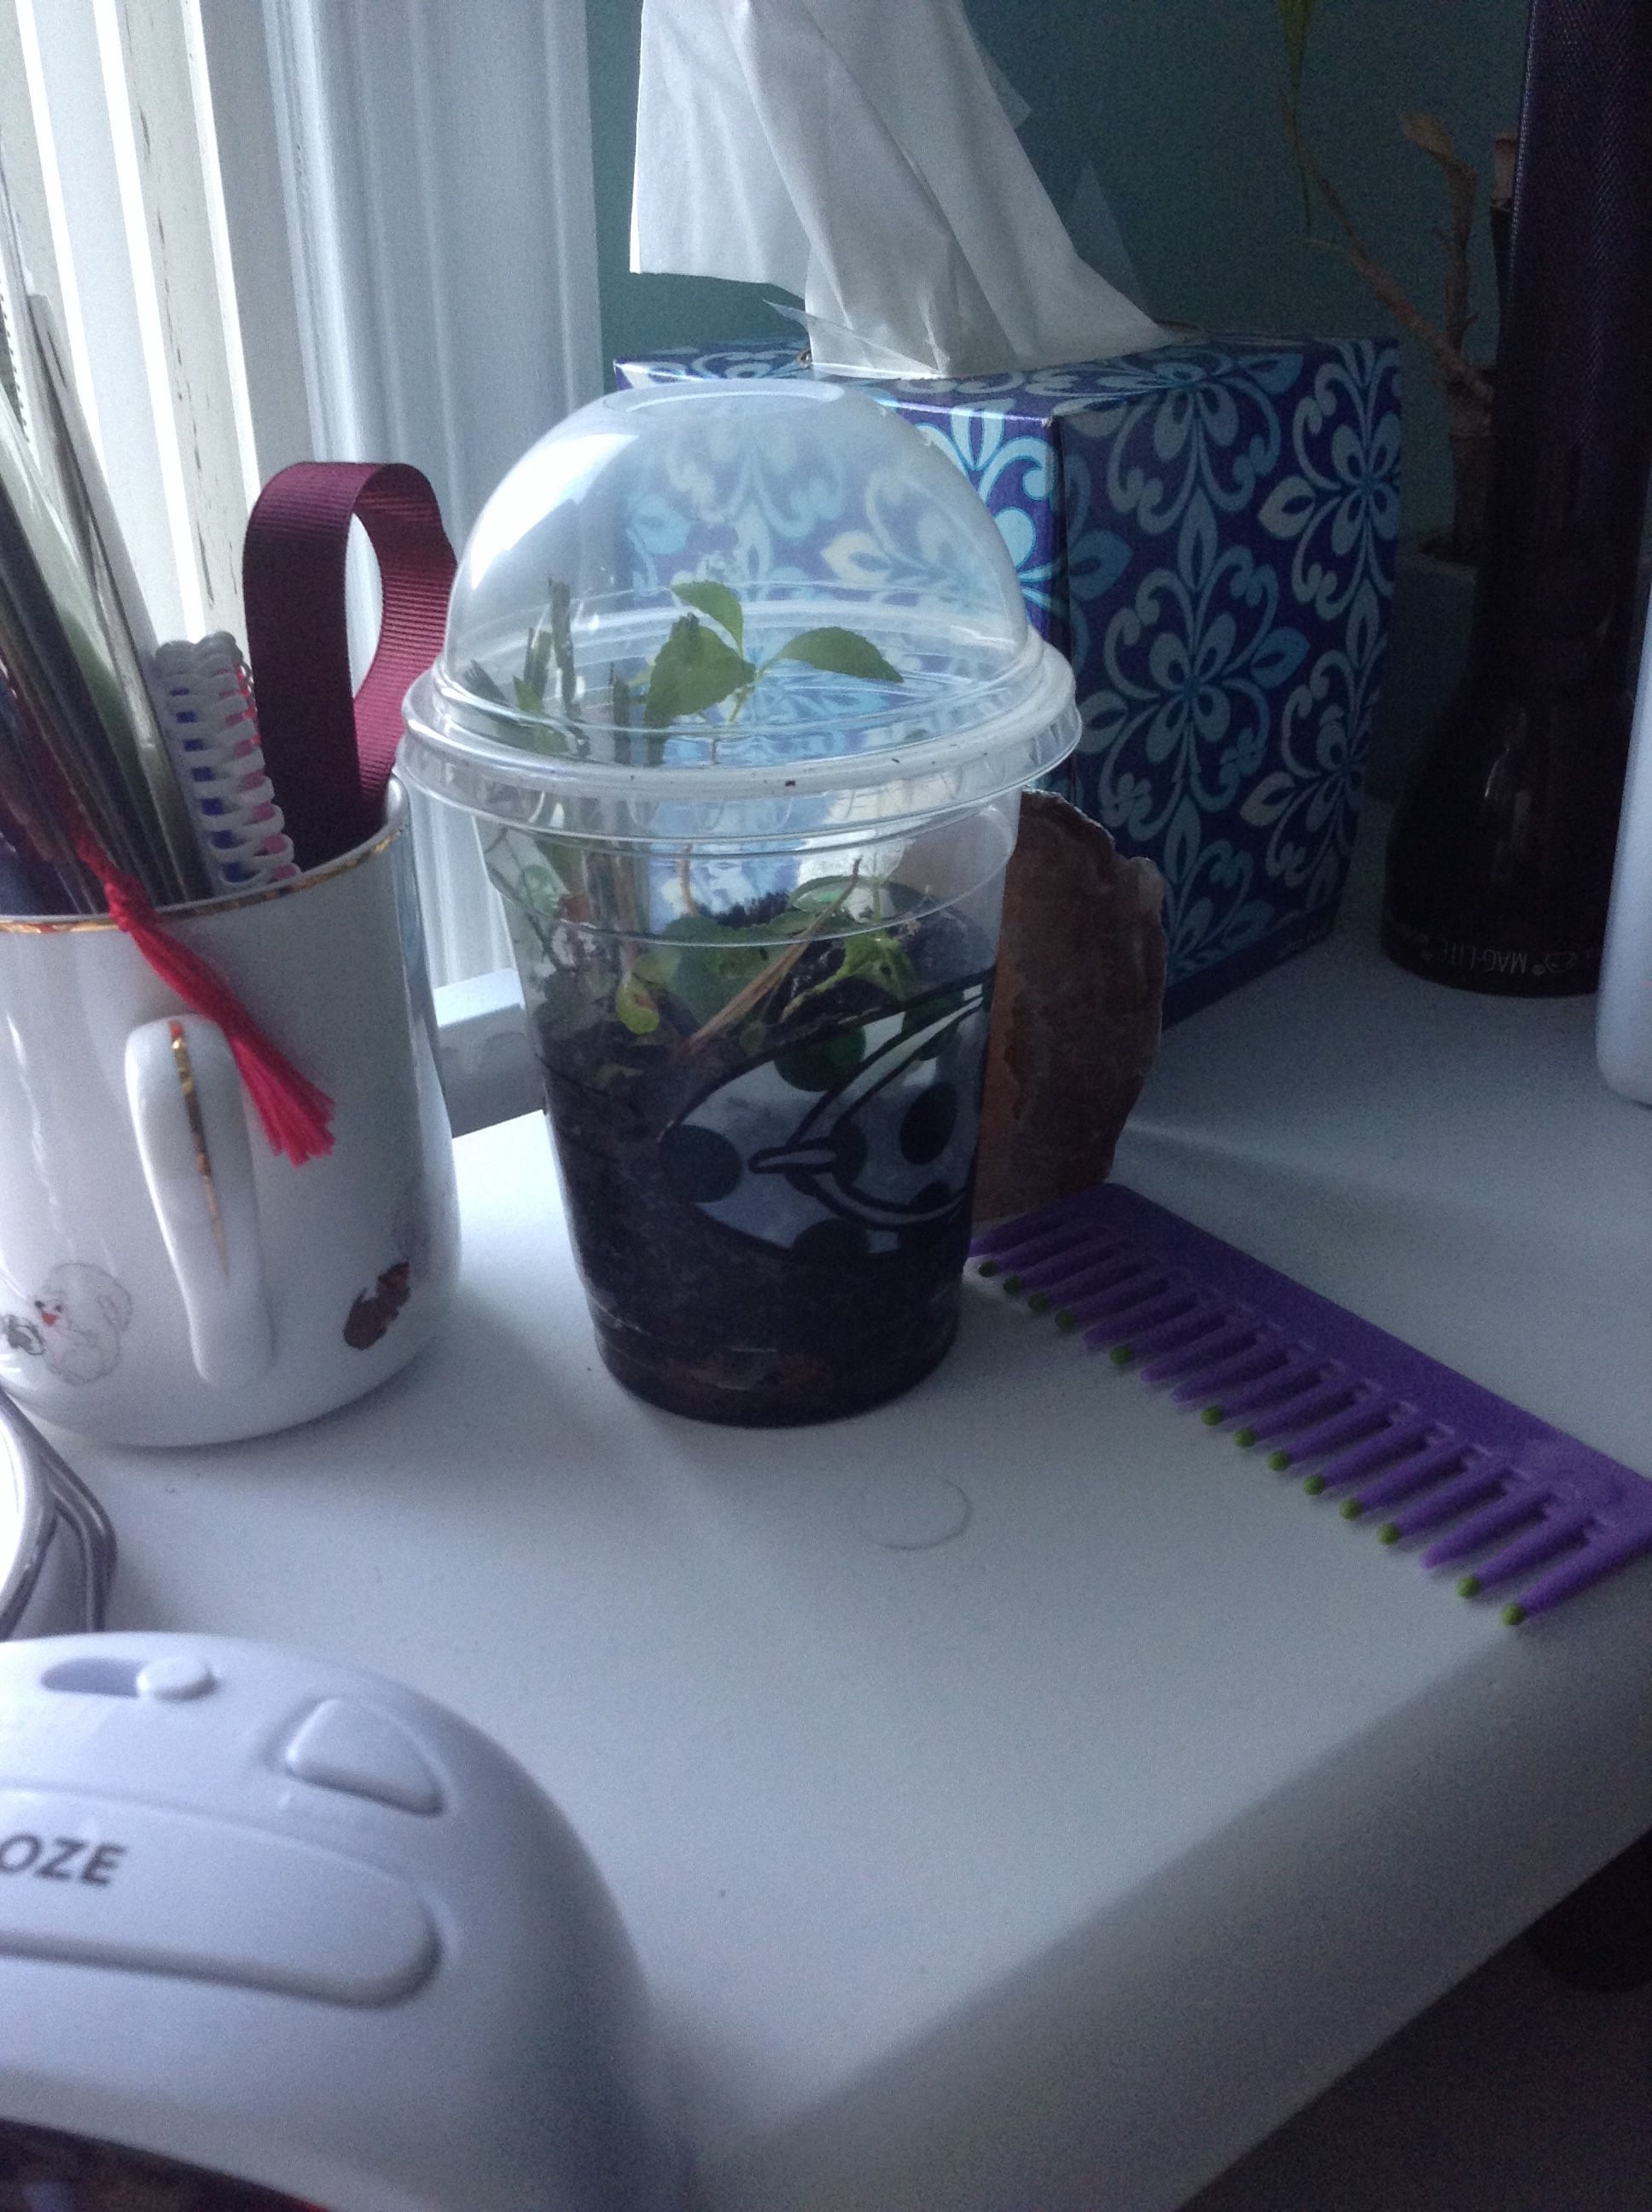 Made this from a frap cup... Literally went outside and picked some weeds and planted them in my cup ^_^